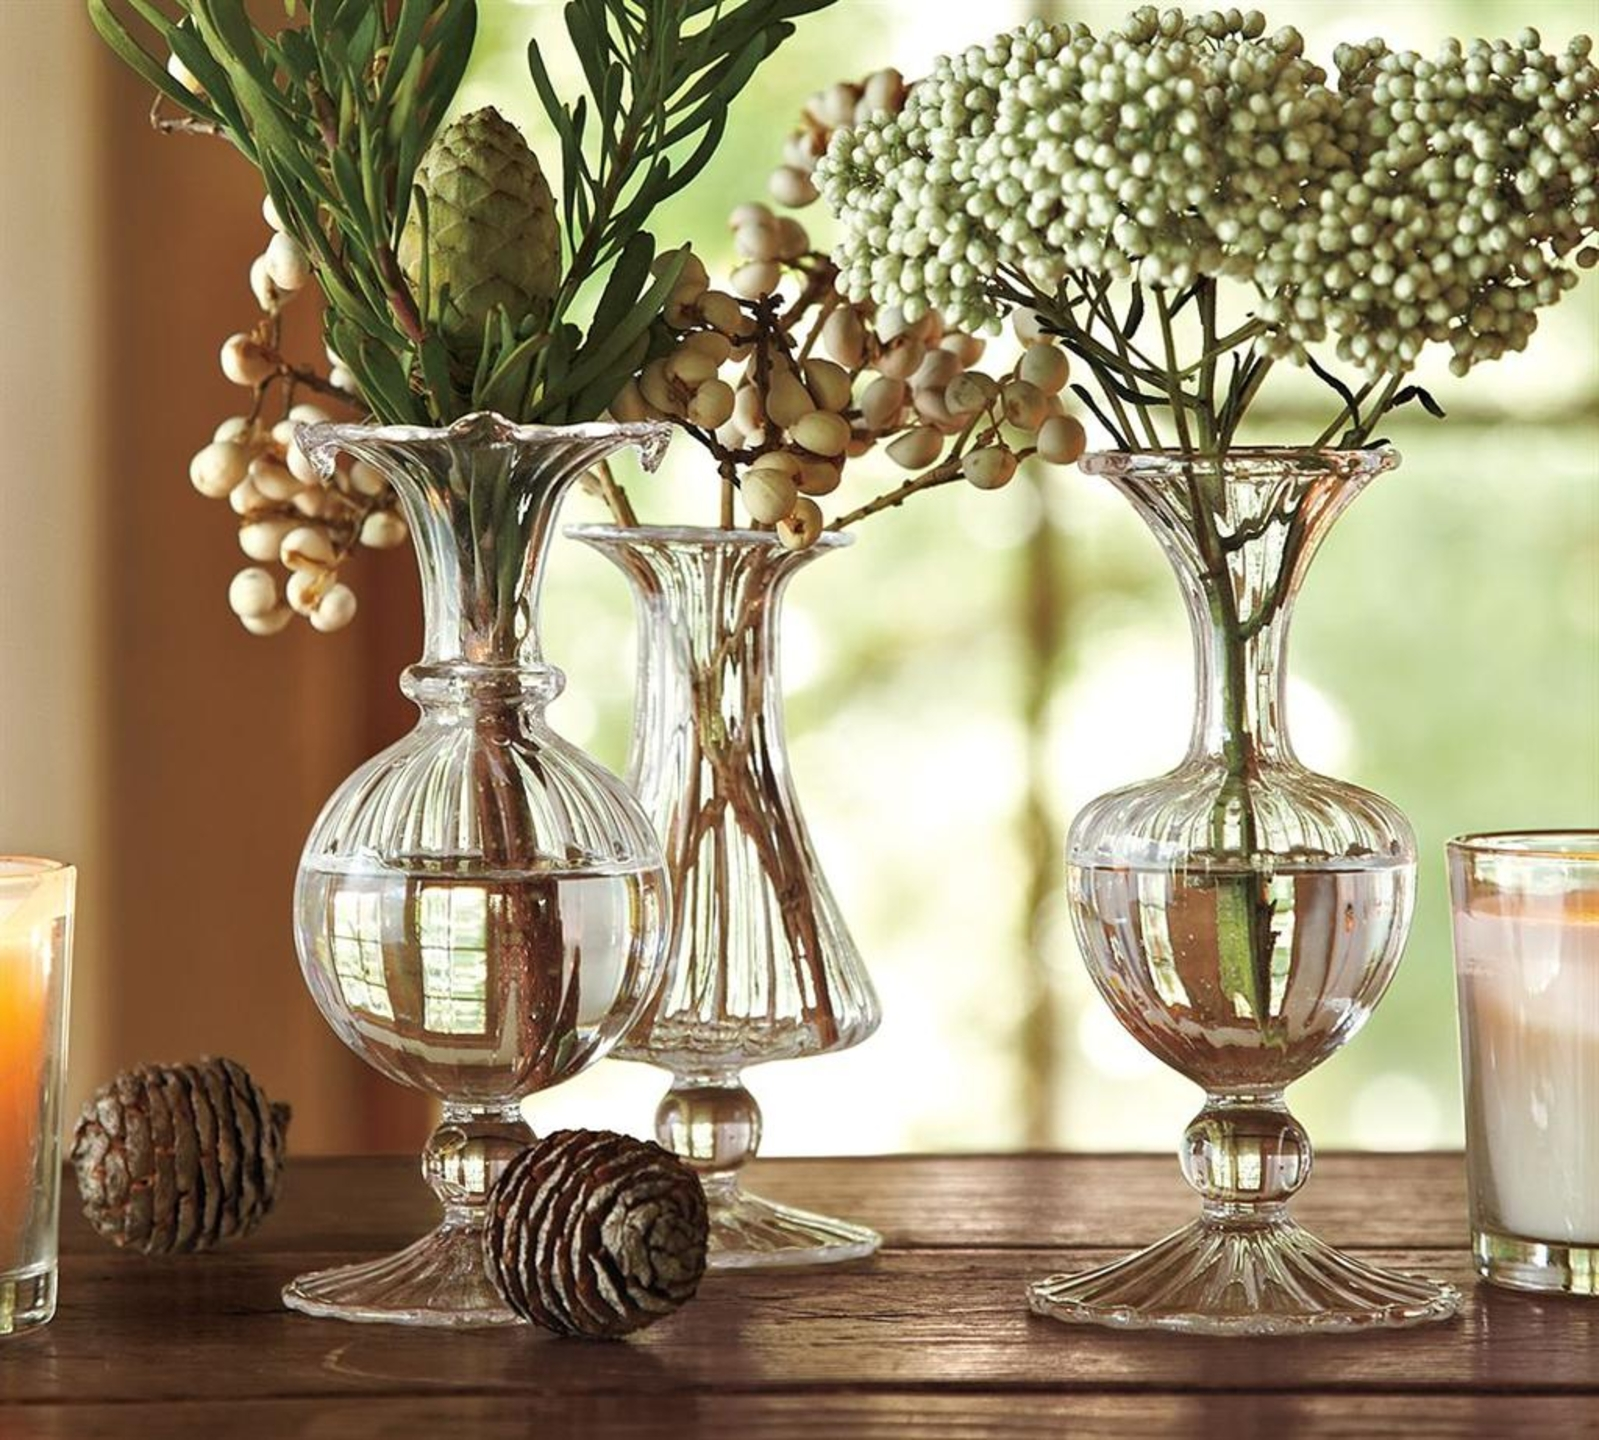 xmas decor and decorations for your home - armenian weddings